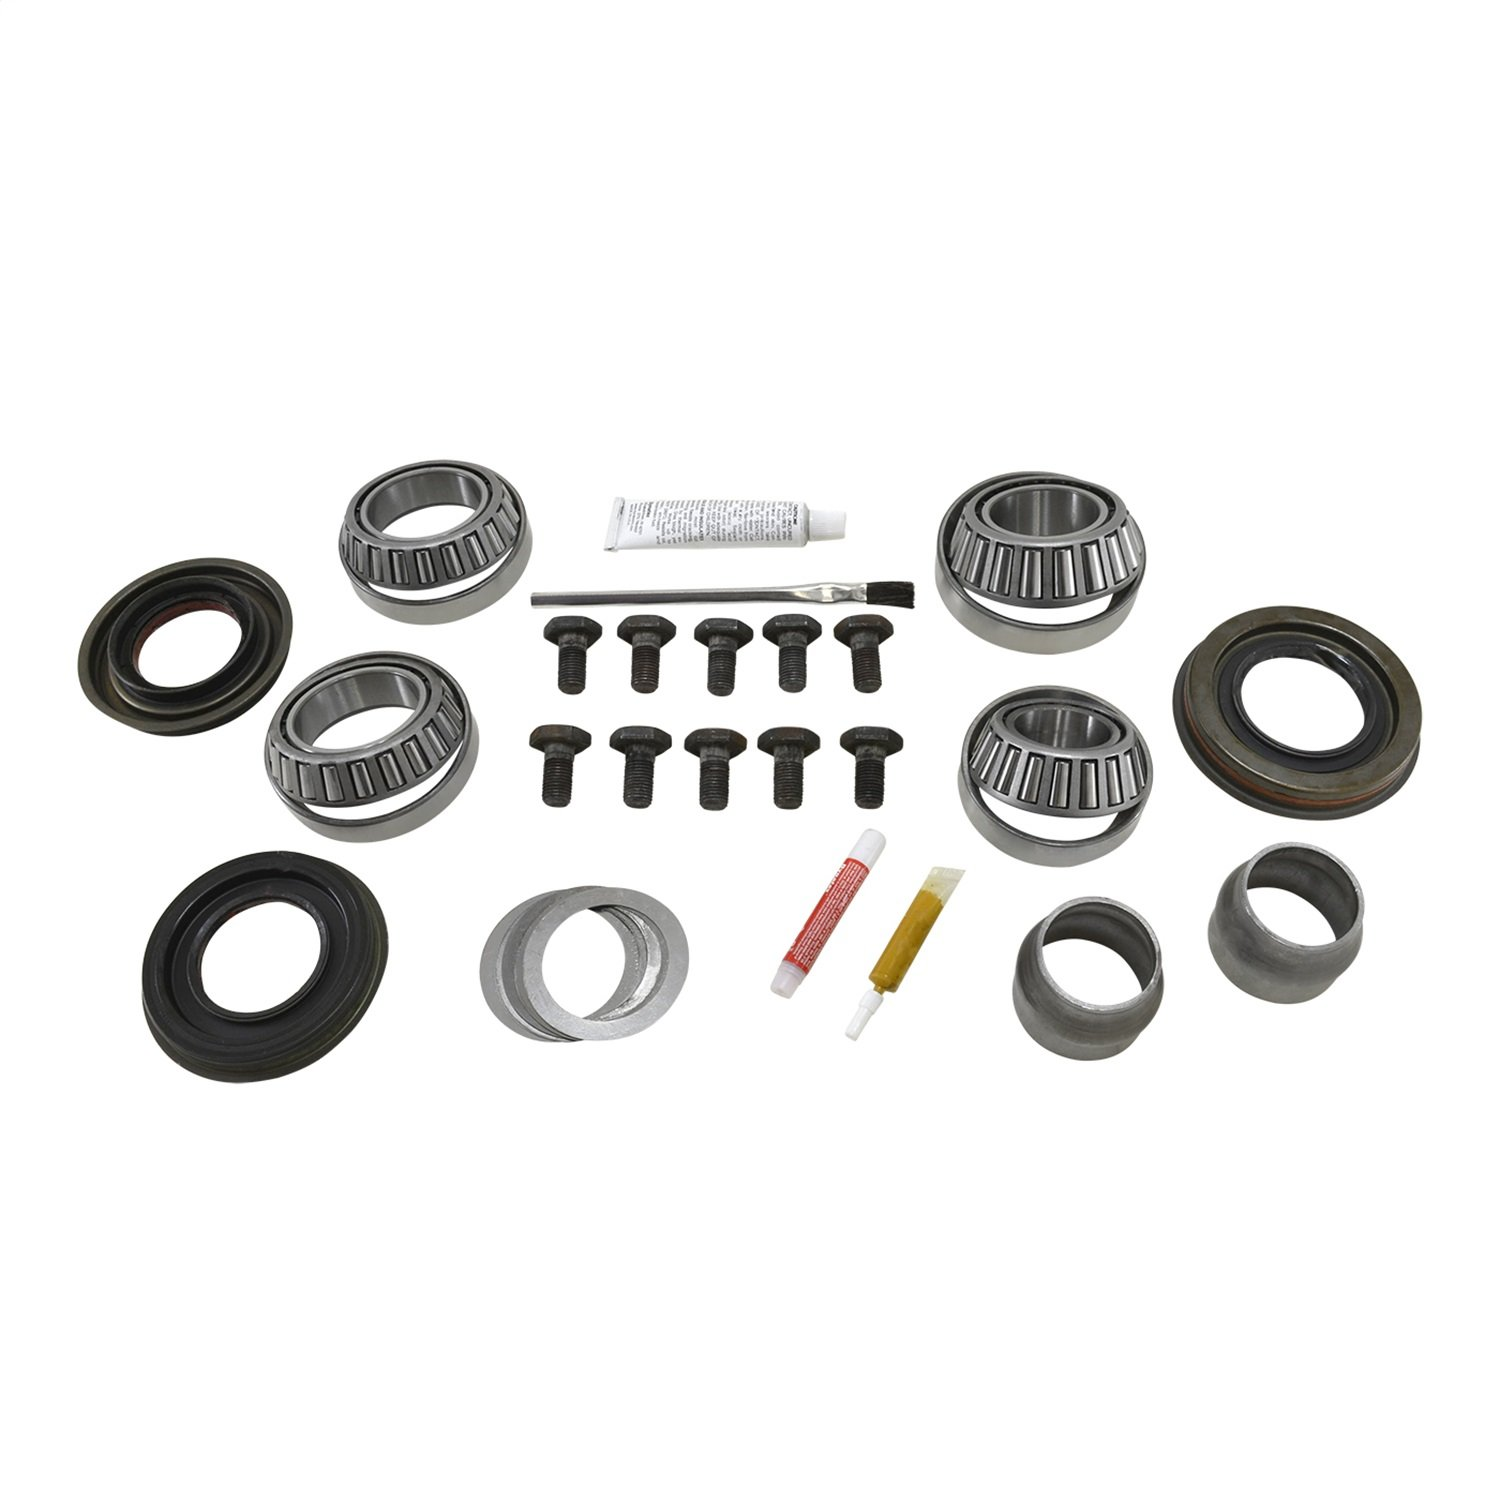 Master Overhaul Kit for Nissan Titan Front Differential YK NM205 Yukon Gear /& Axle